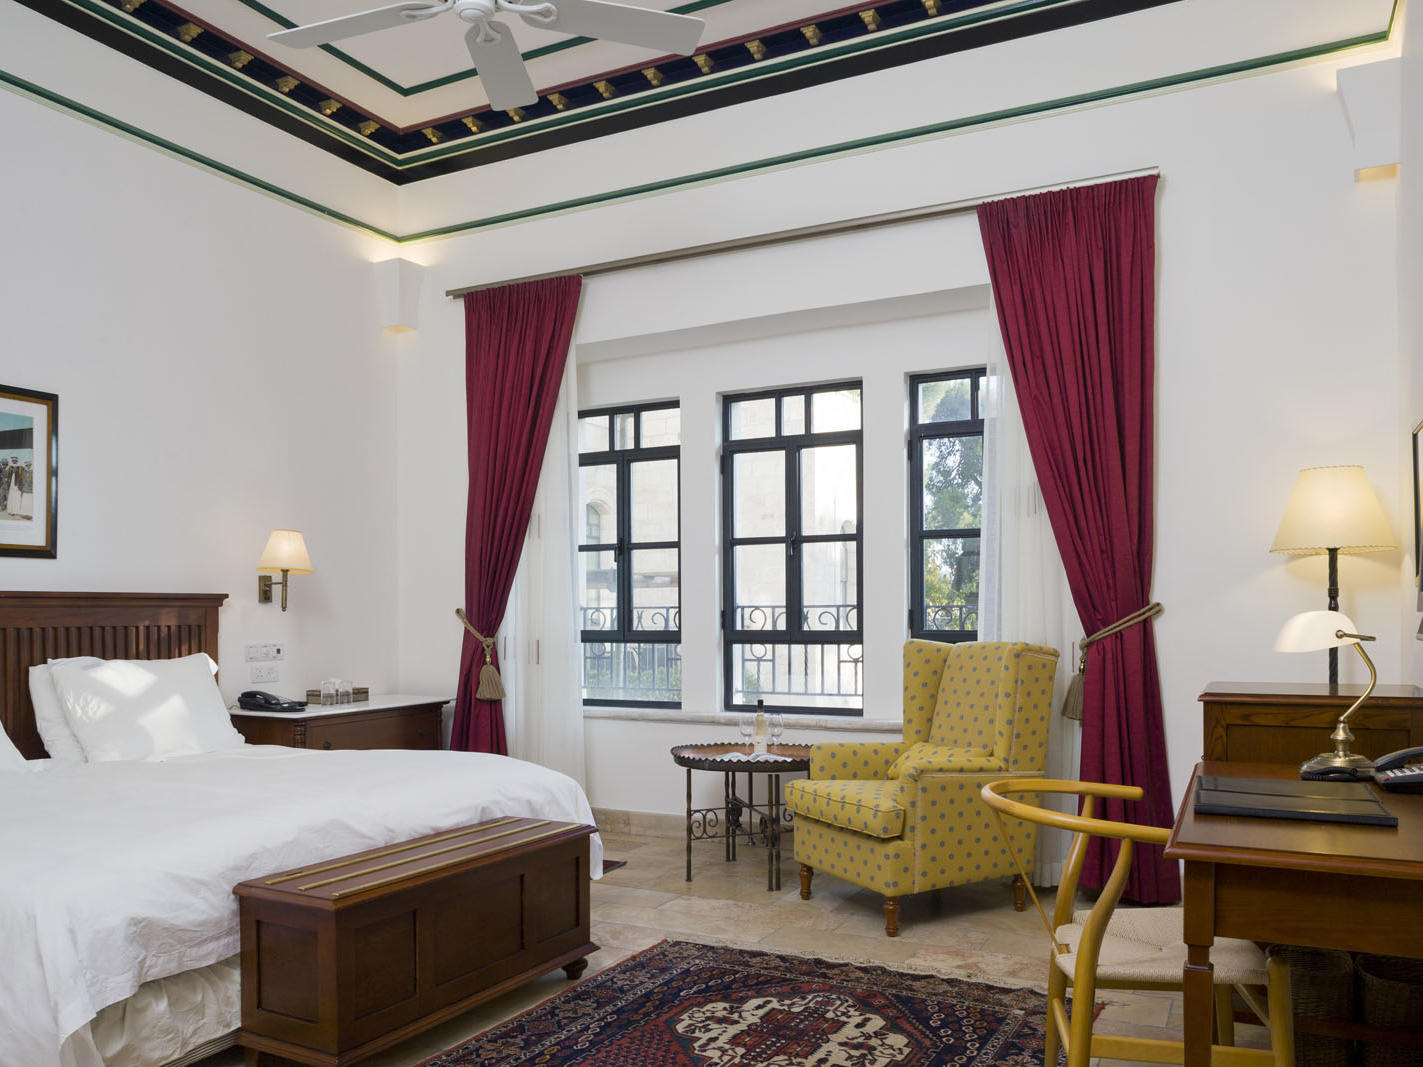 Classic Pasha Room at The American Colony Hotel in Jerusalem